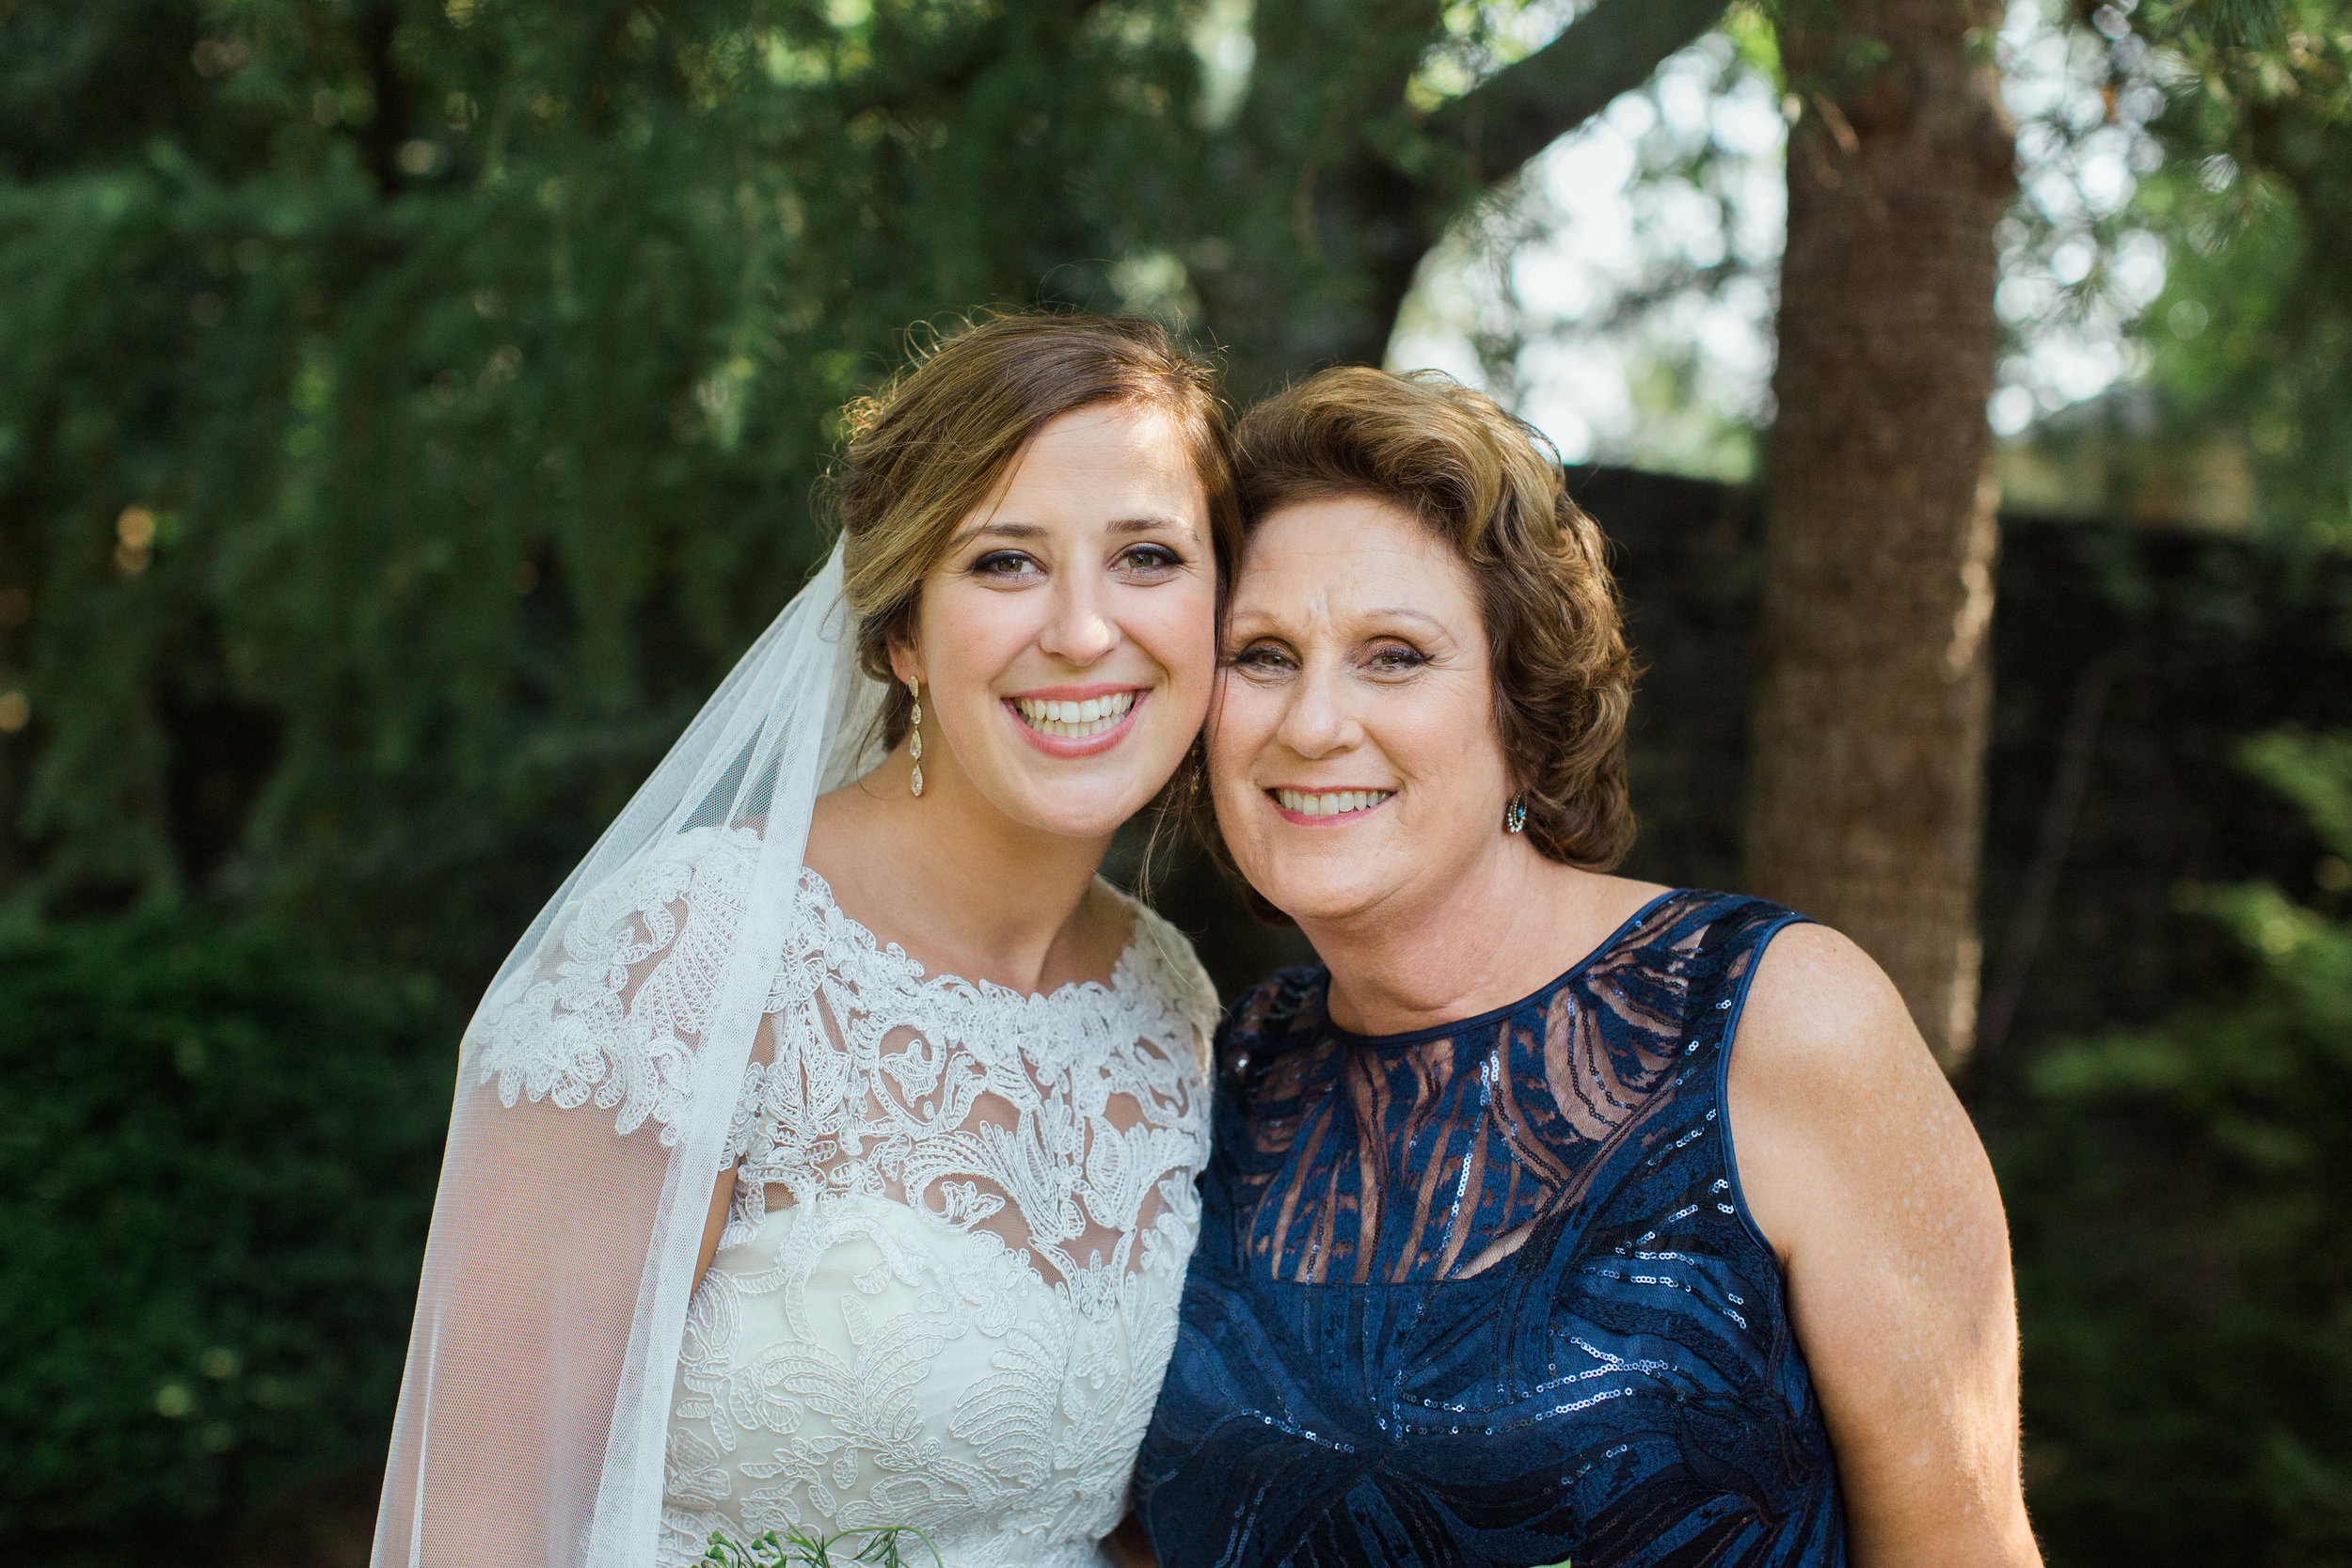 Katie and her mom